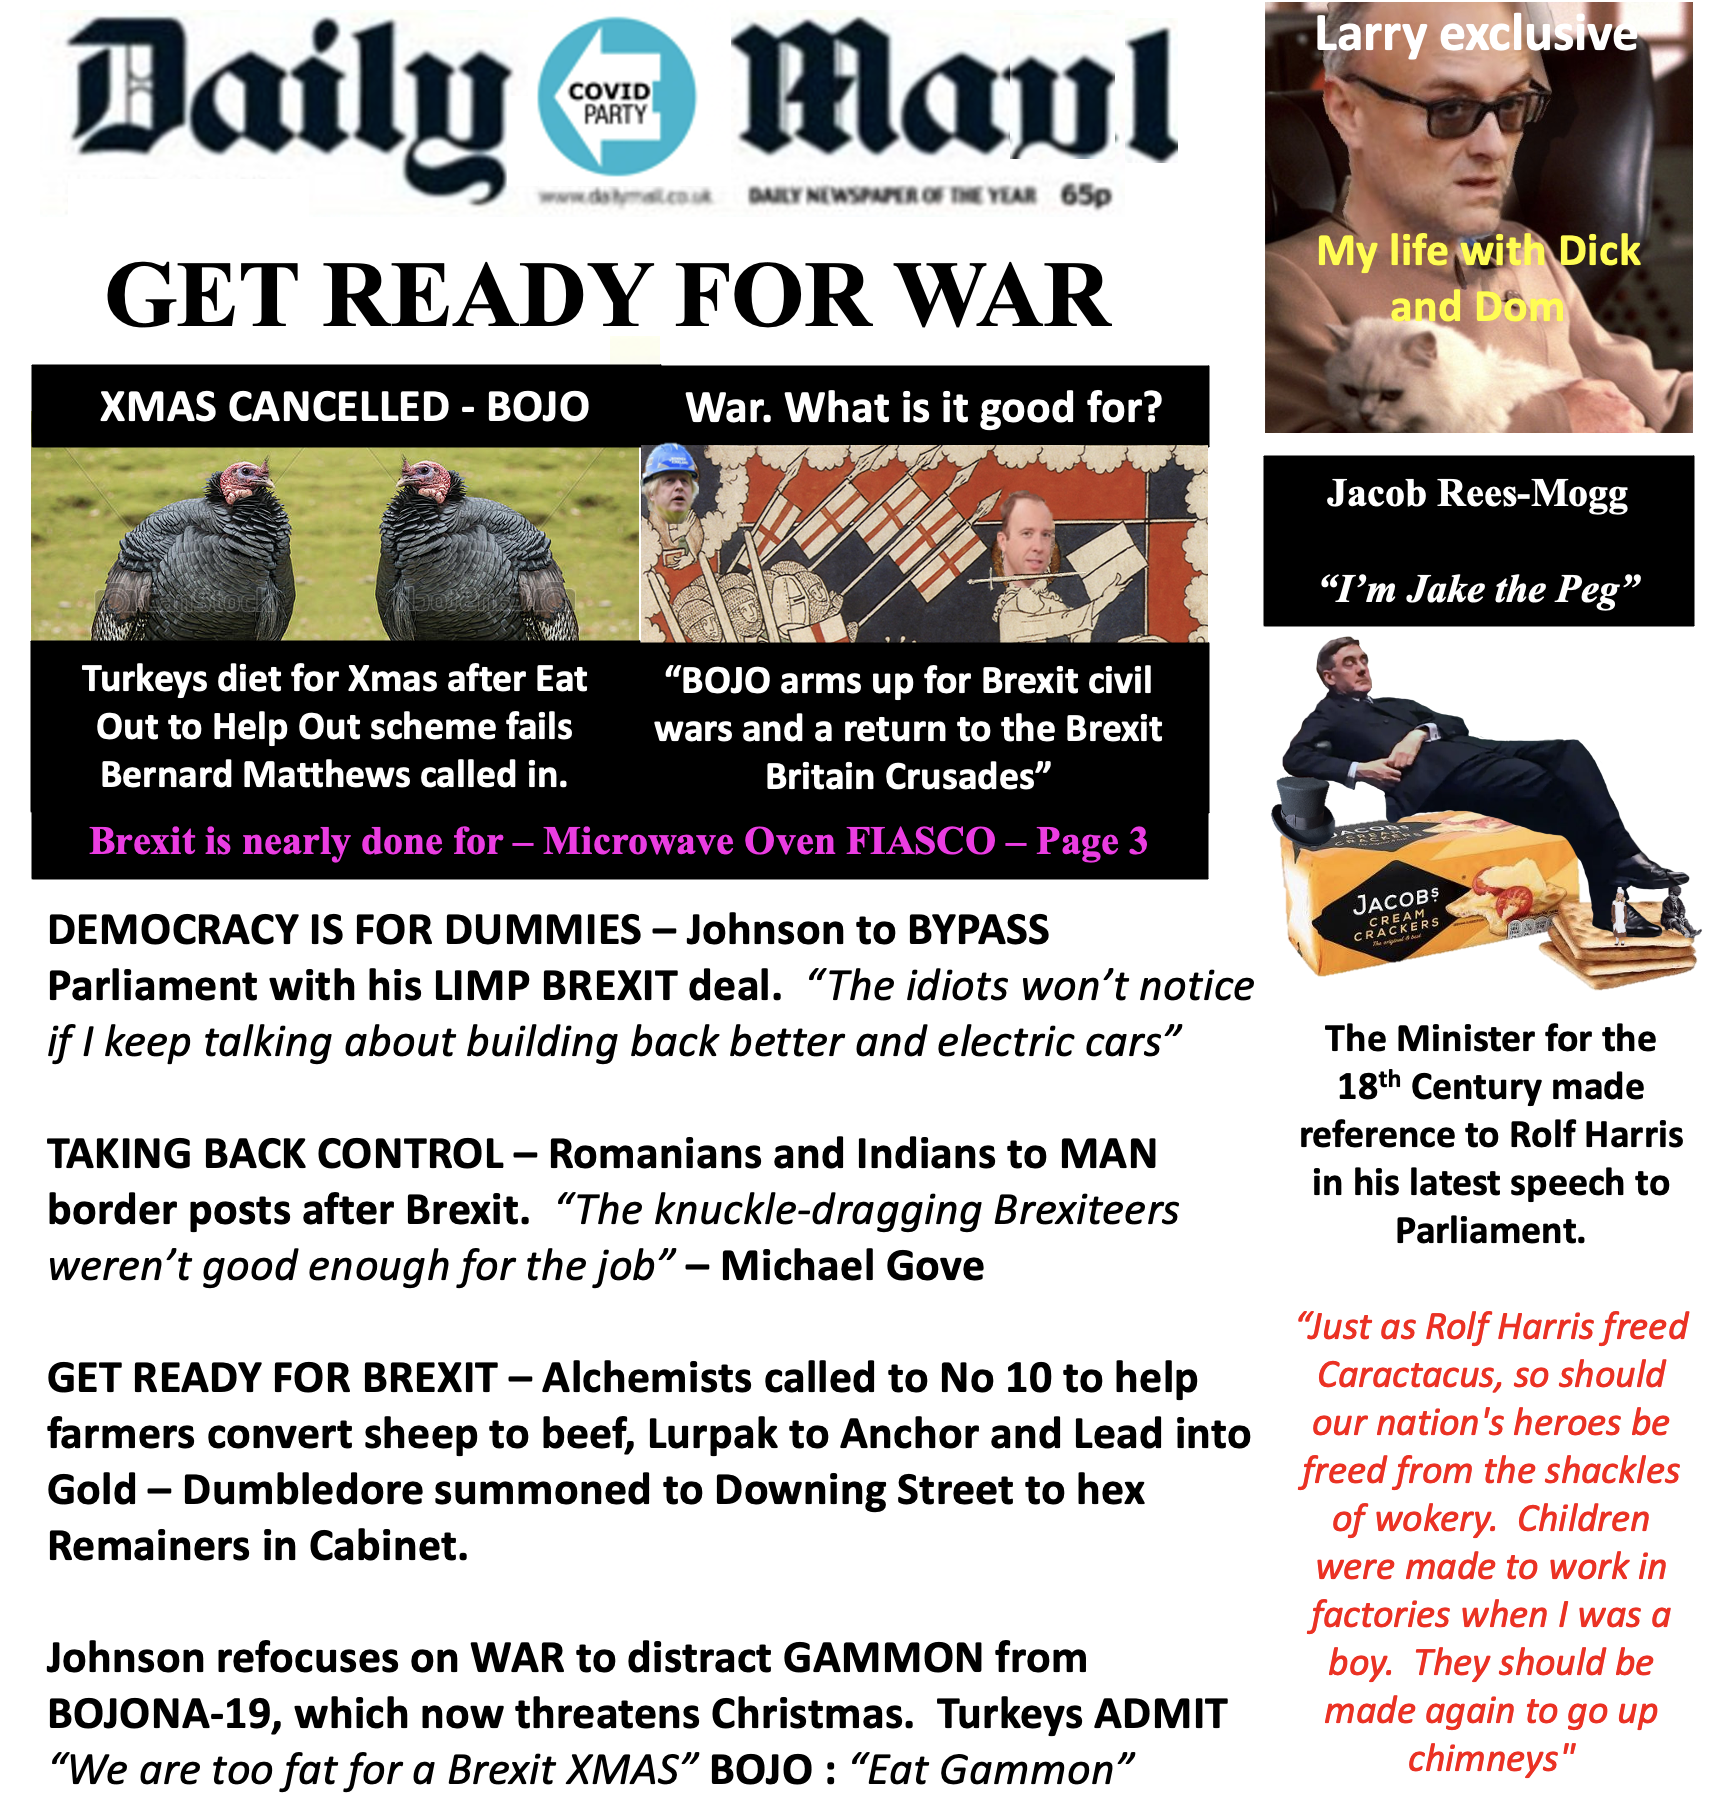 Get Ready for a Brexit Civil War